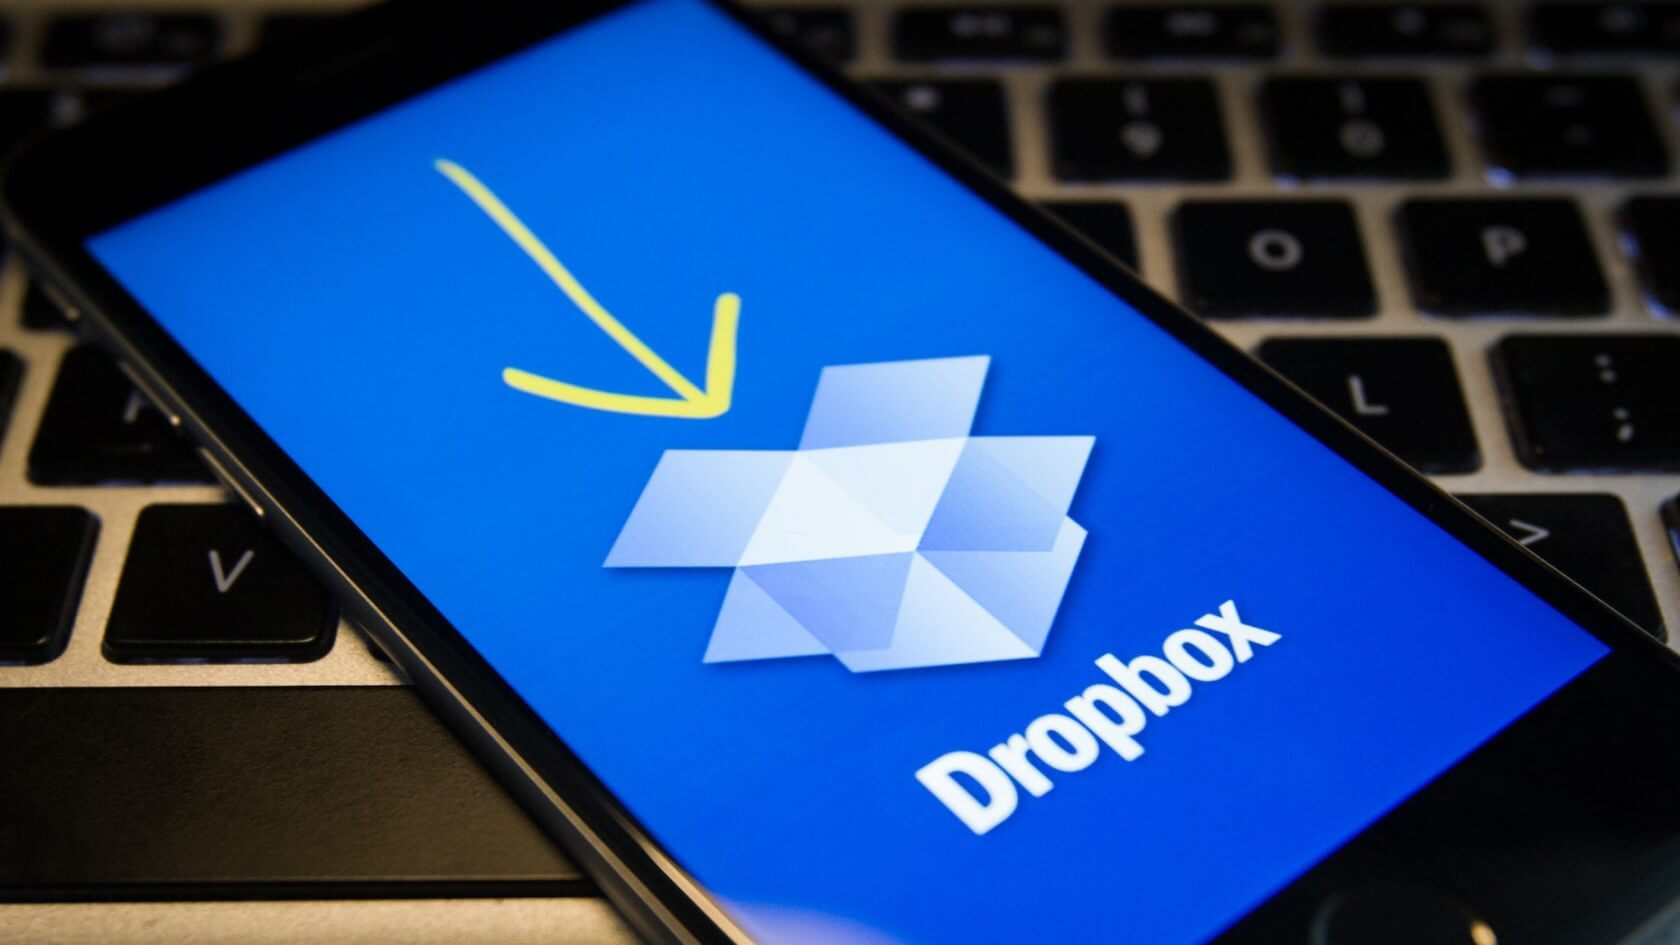 Dropbox mistakenly installed a new desktop app on user devices without notice